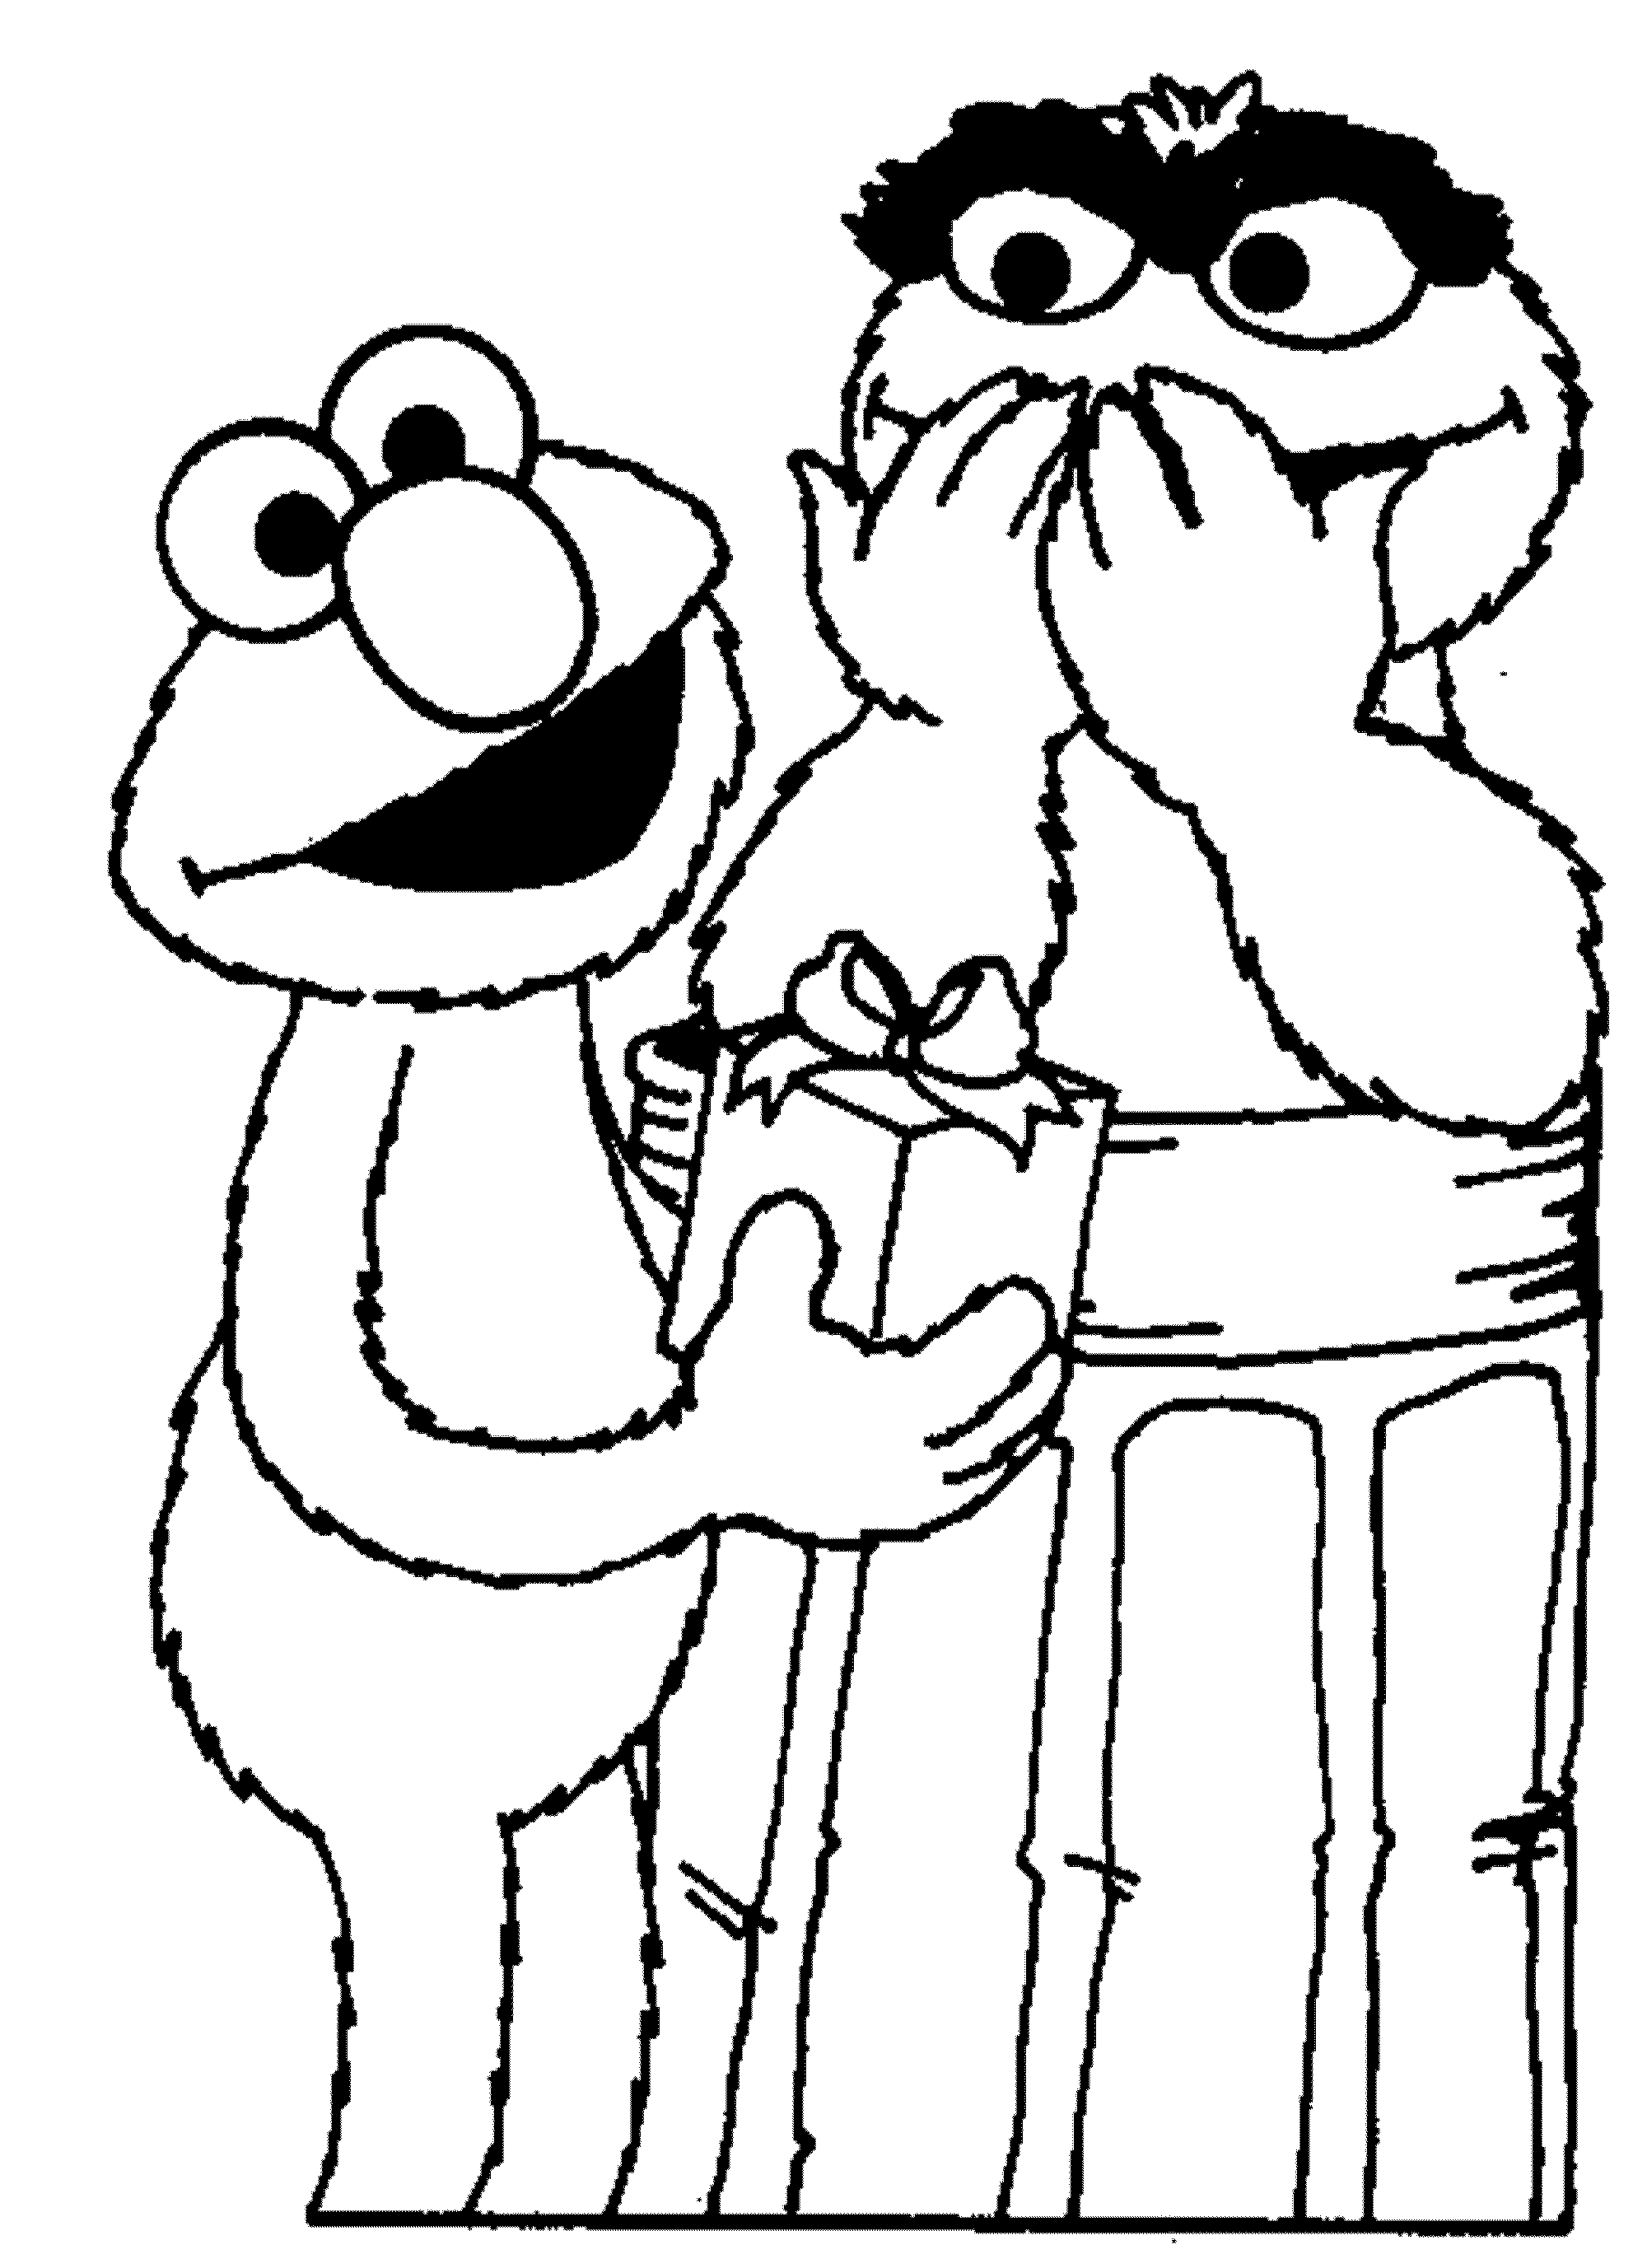 free printout coloring pages | Elmo Coloring Pages Printable Free - Coloring Home